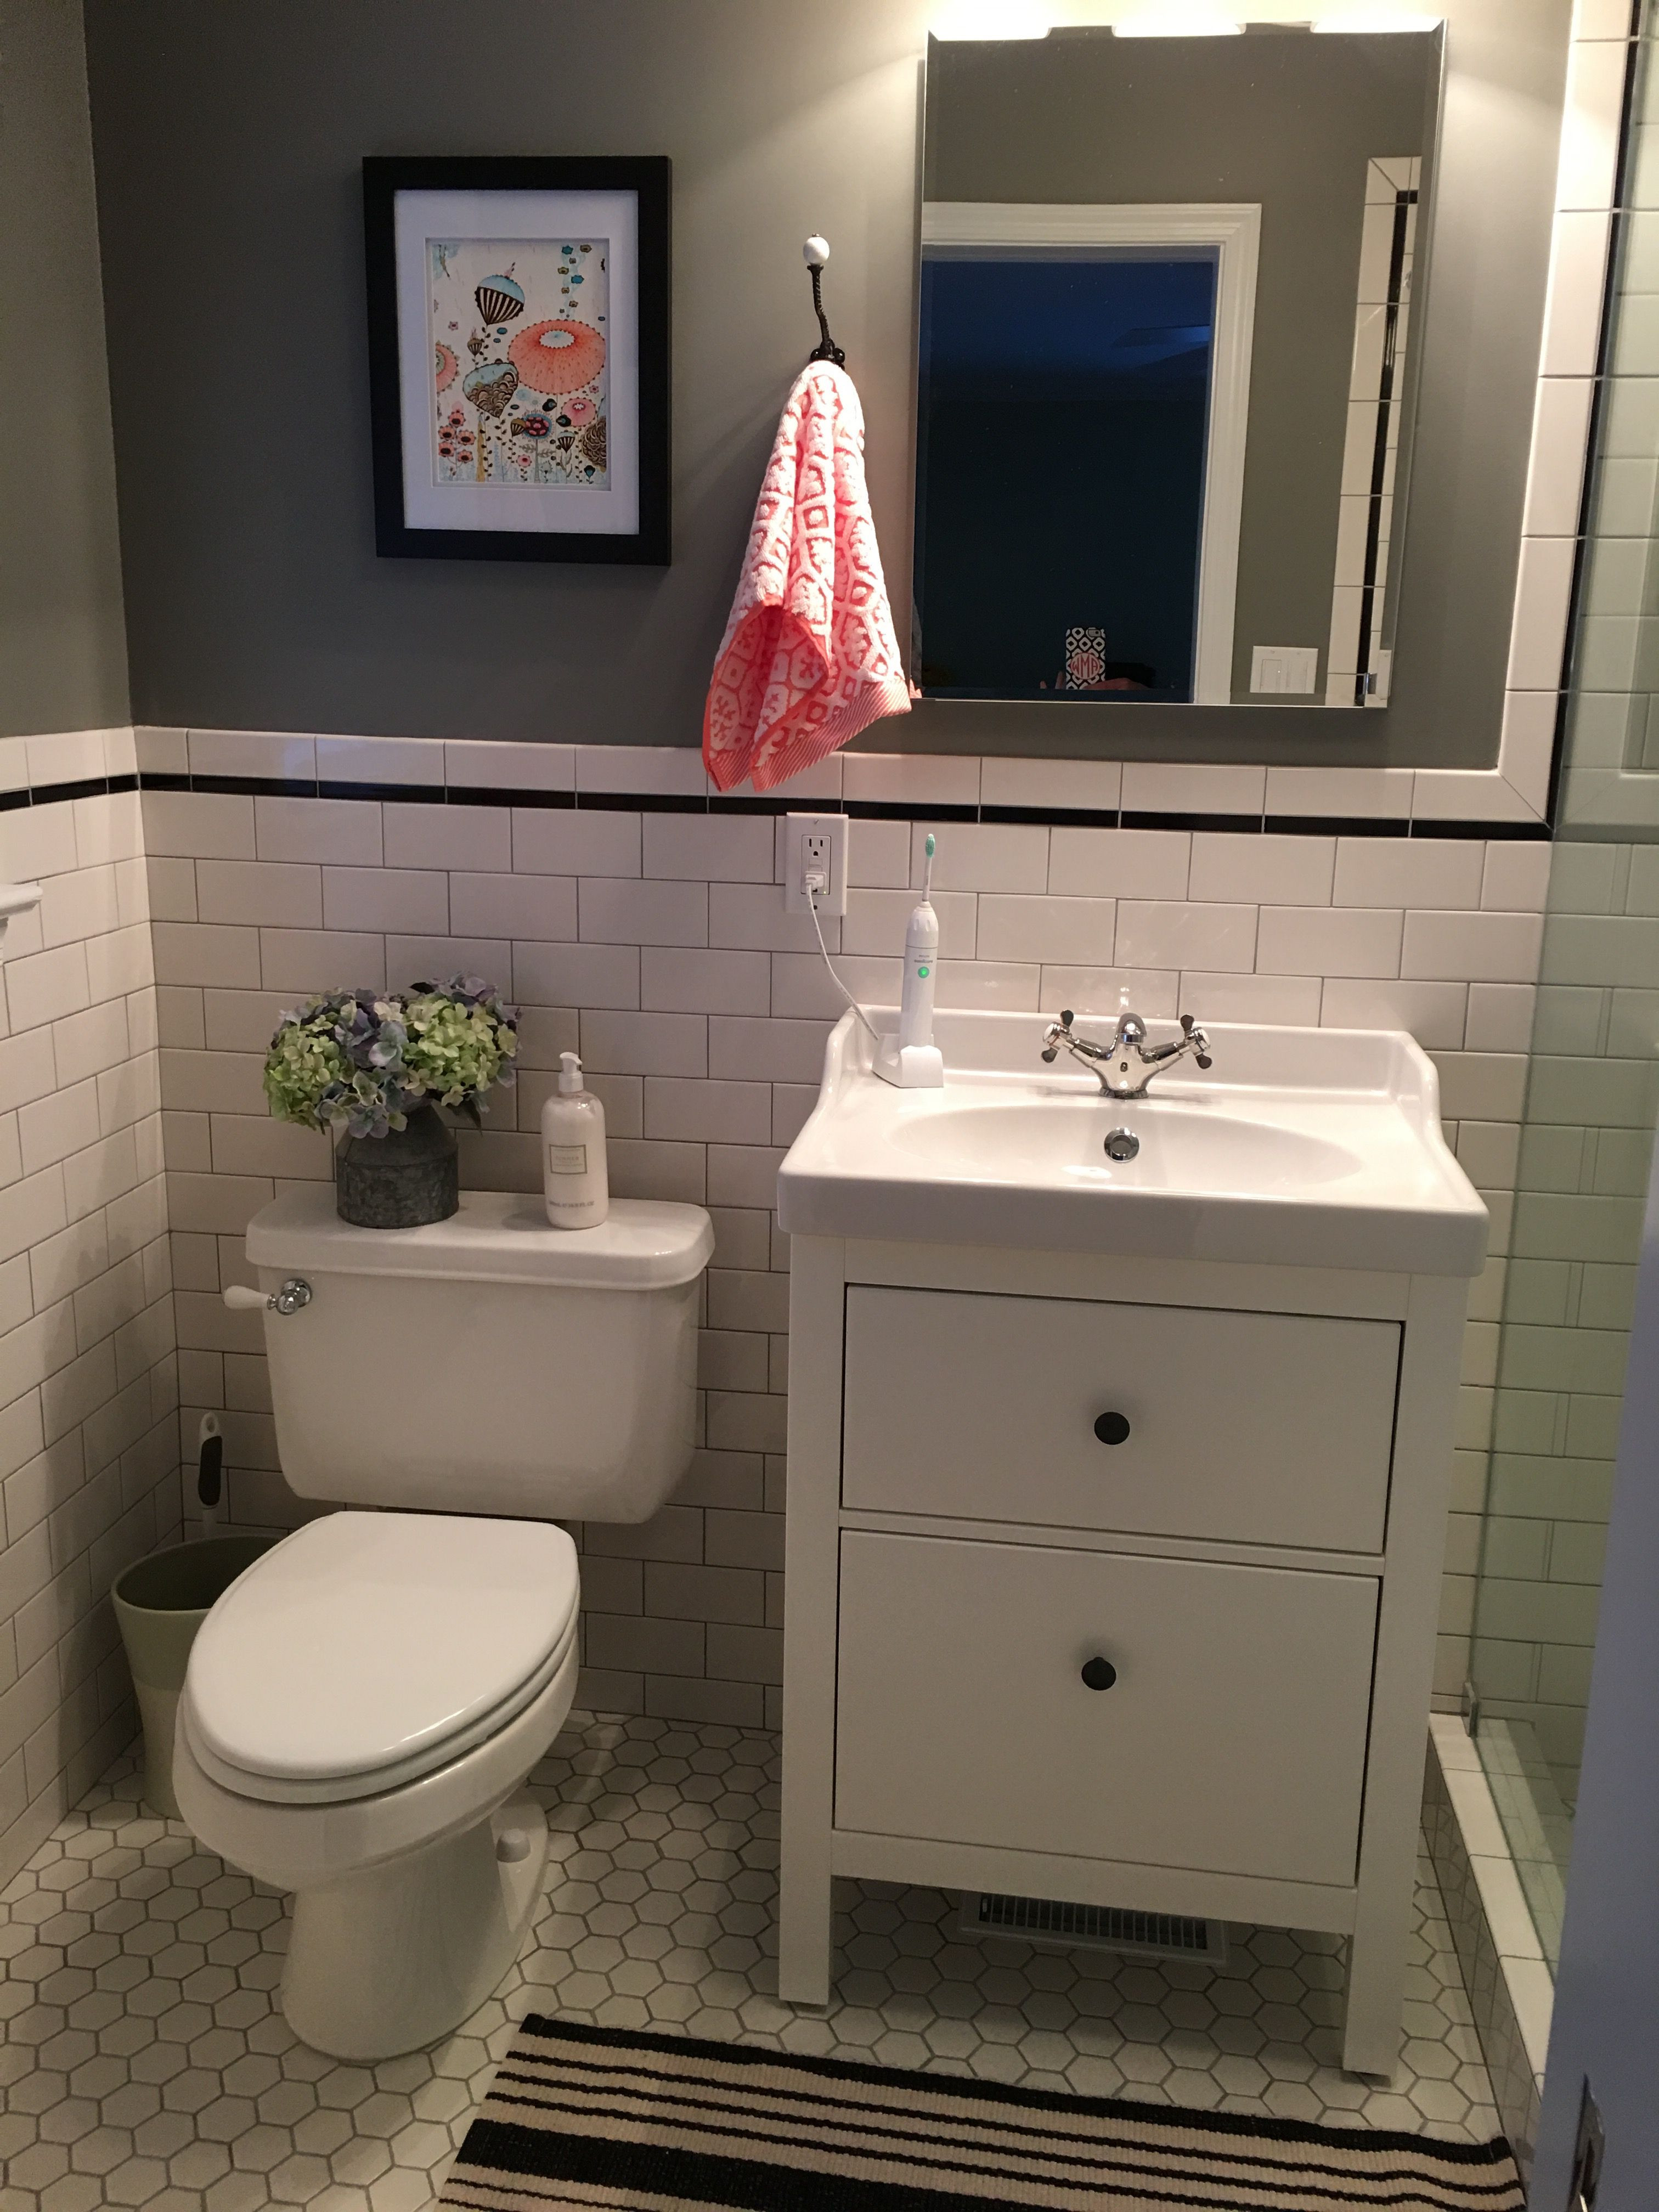 Best ideas about Ikea Bathroom Vanity . Save or Pin IKEA Hemnes Bathroom Vanity Bathroom remodel Now.